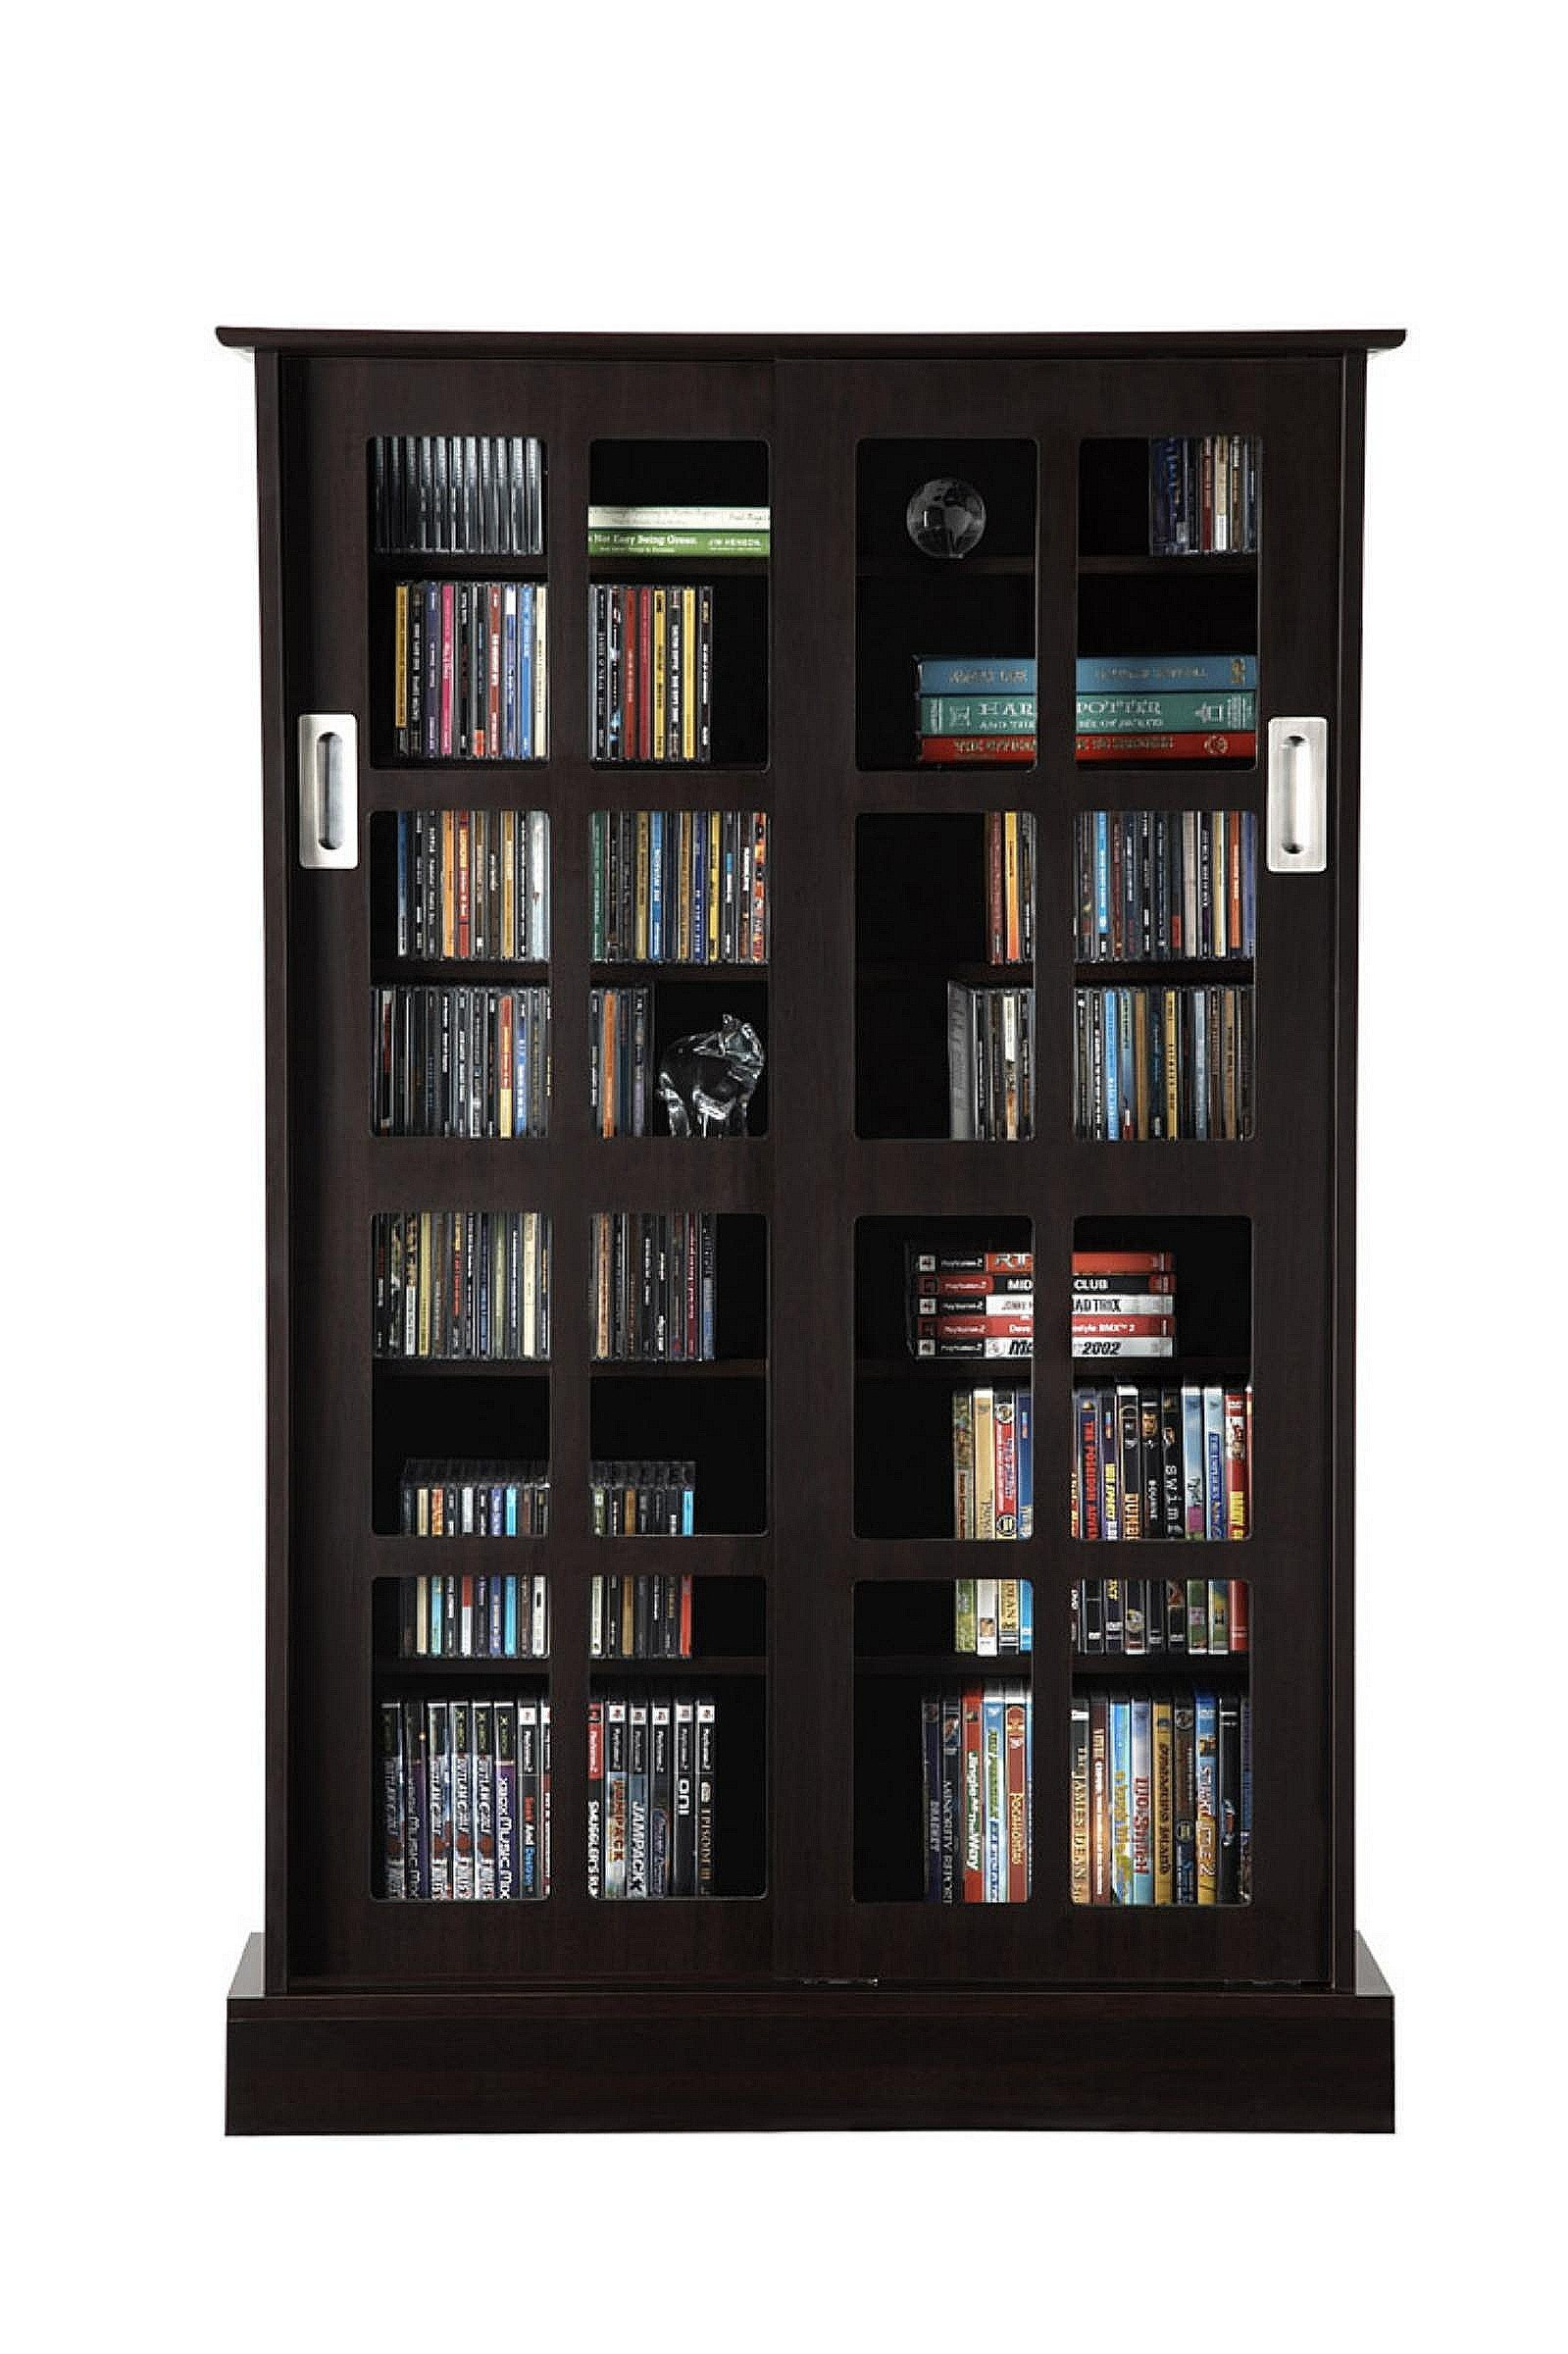 Atlantic Windowpane Adjustable Media Cabinet - Tempered Glass Pane Styled Sliding Doors, Store 216 Blu-Rays,192 DVDs or 576, Adjustable Shelves, 49 X 32 X 9.5 inches PN94835721 in Espresso by Atlantic